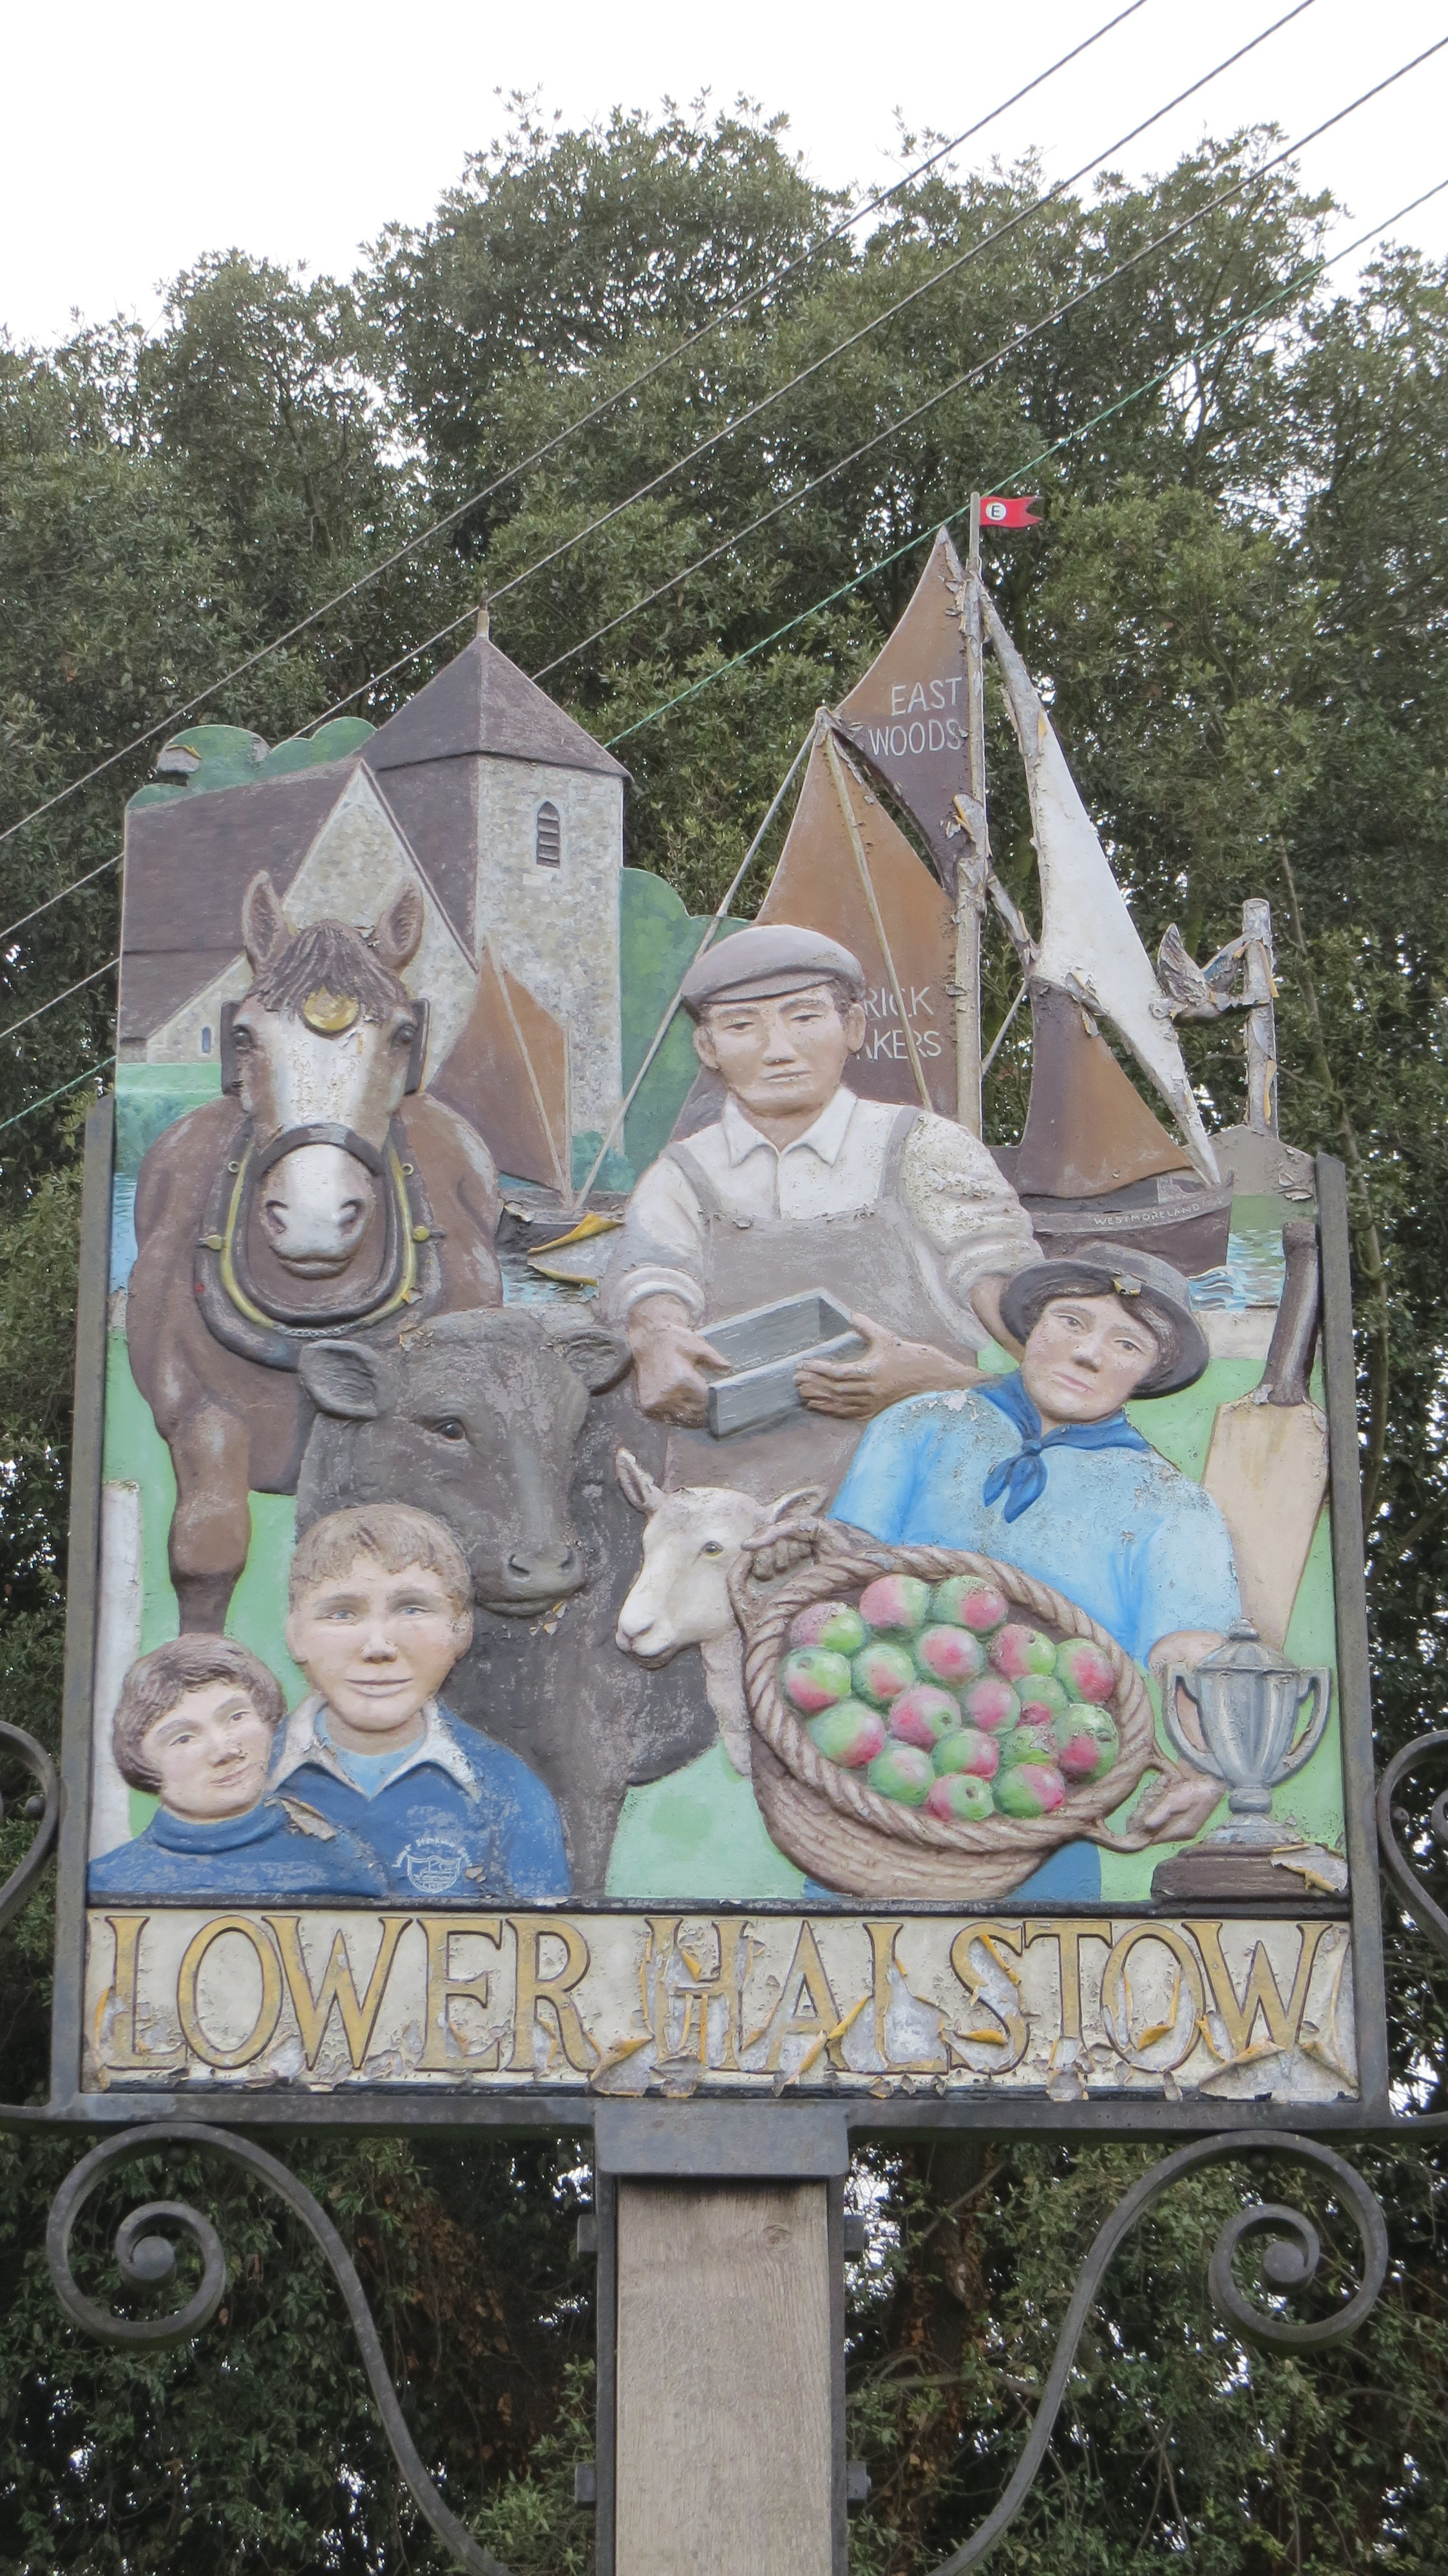 Lower Halstow Sign